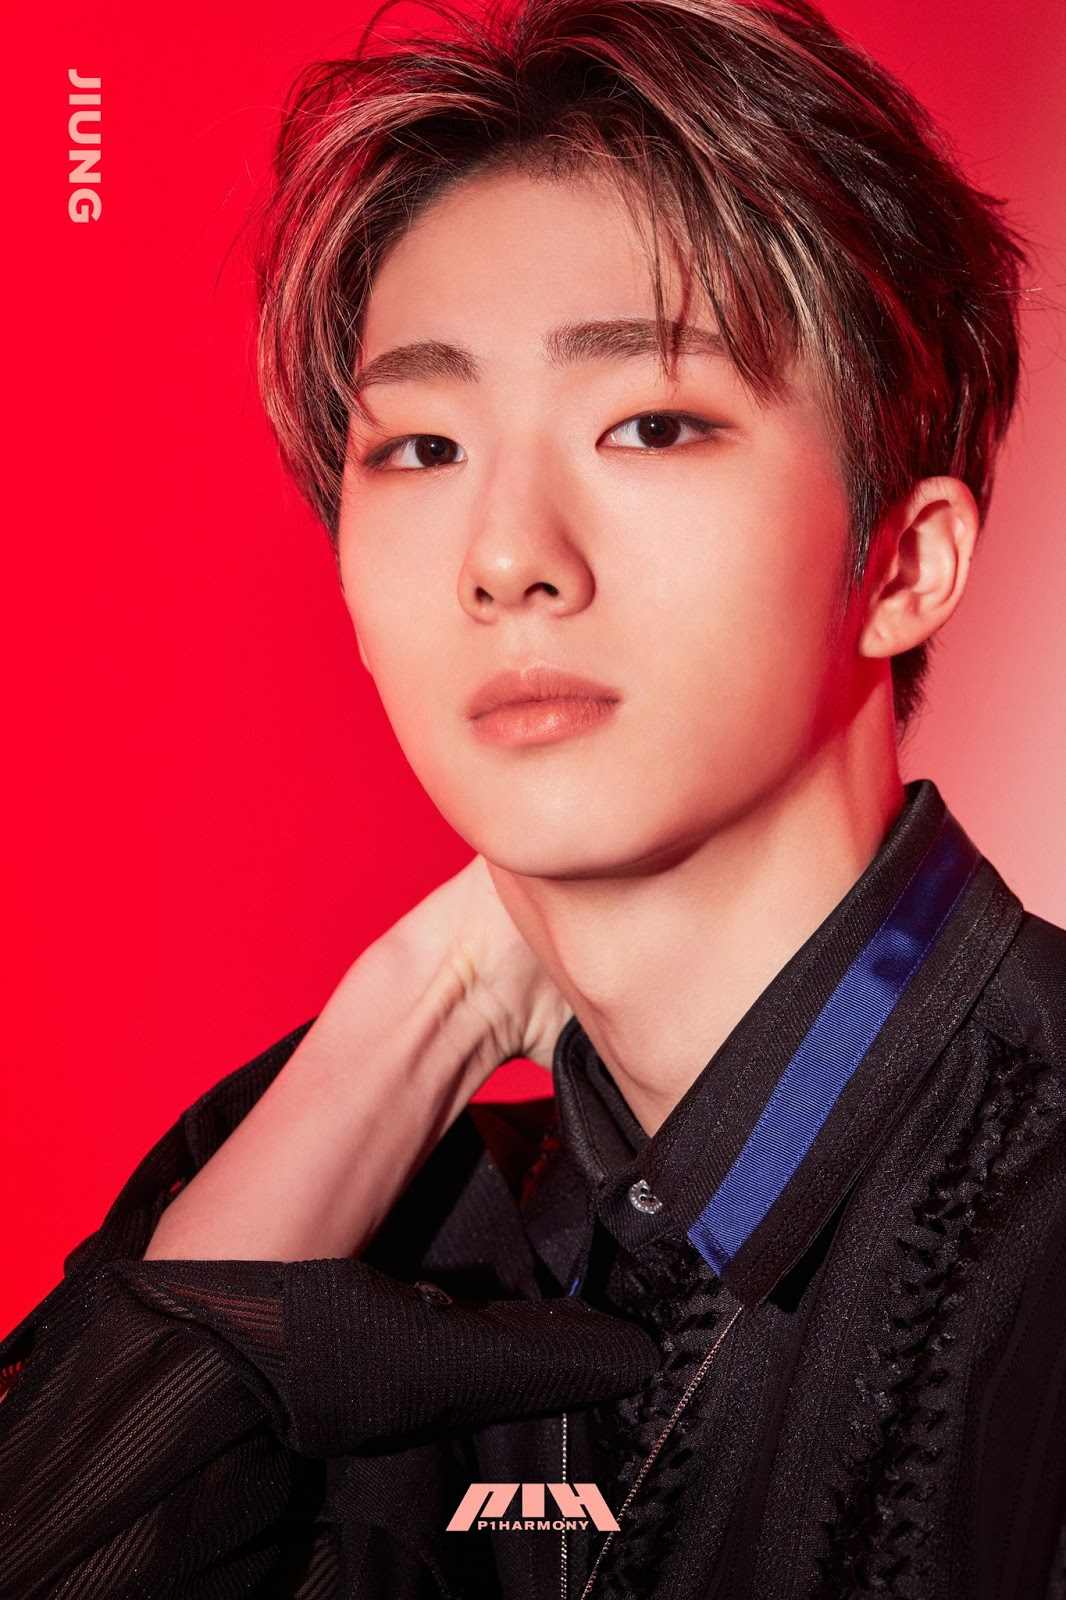 Fnc Entertainment Unveiled The New Profile Of P1harmony Members Keeho Theo Jiung For The Upcoming Debut 헌터) is a south korean boy group formed by yh entertainment in 2021. fnc entertainment unveiled the new